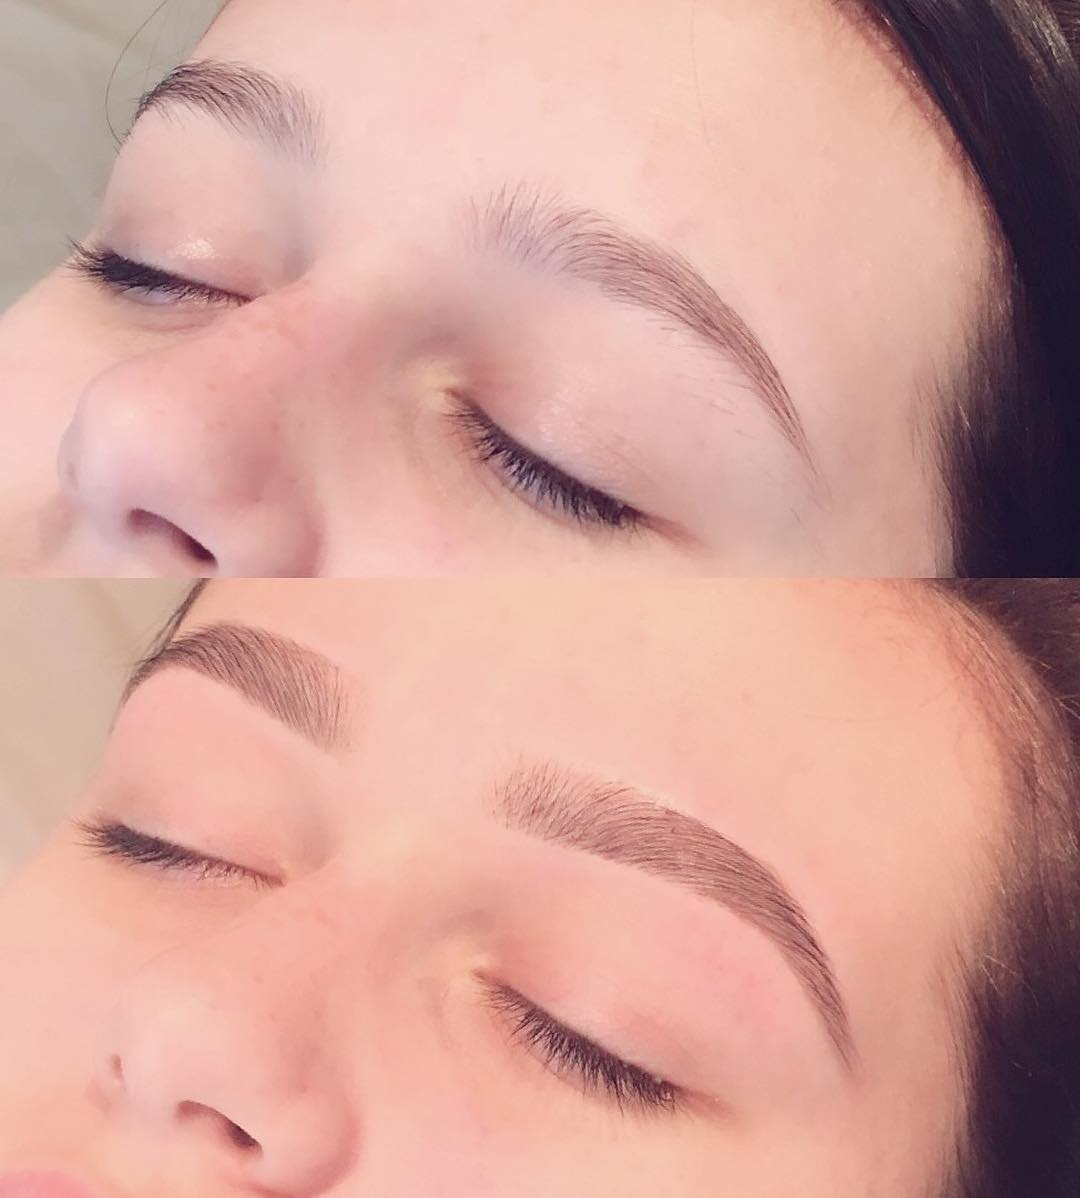 Ibrowenvy Hd Brows Bristol Stunning Hd Brows Hd Pro Stylist